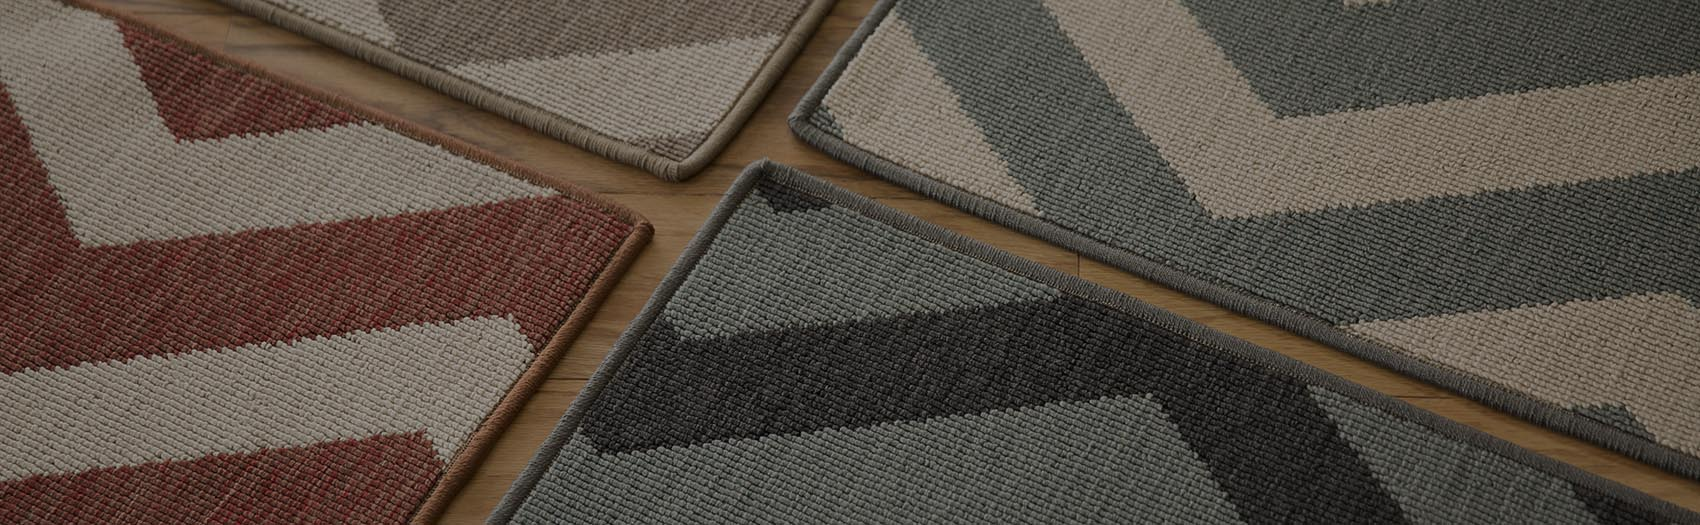 rugs_header – colortile carpetsplus port charlotte